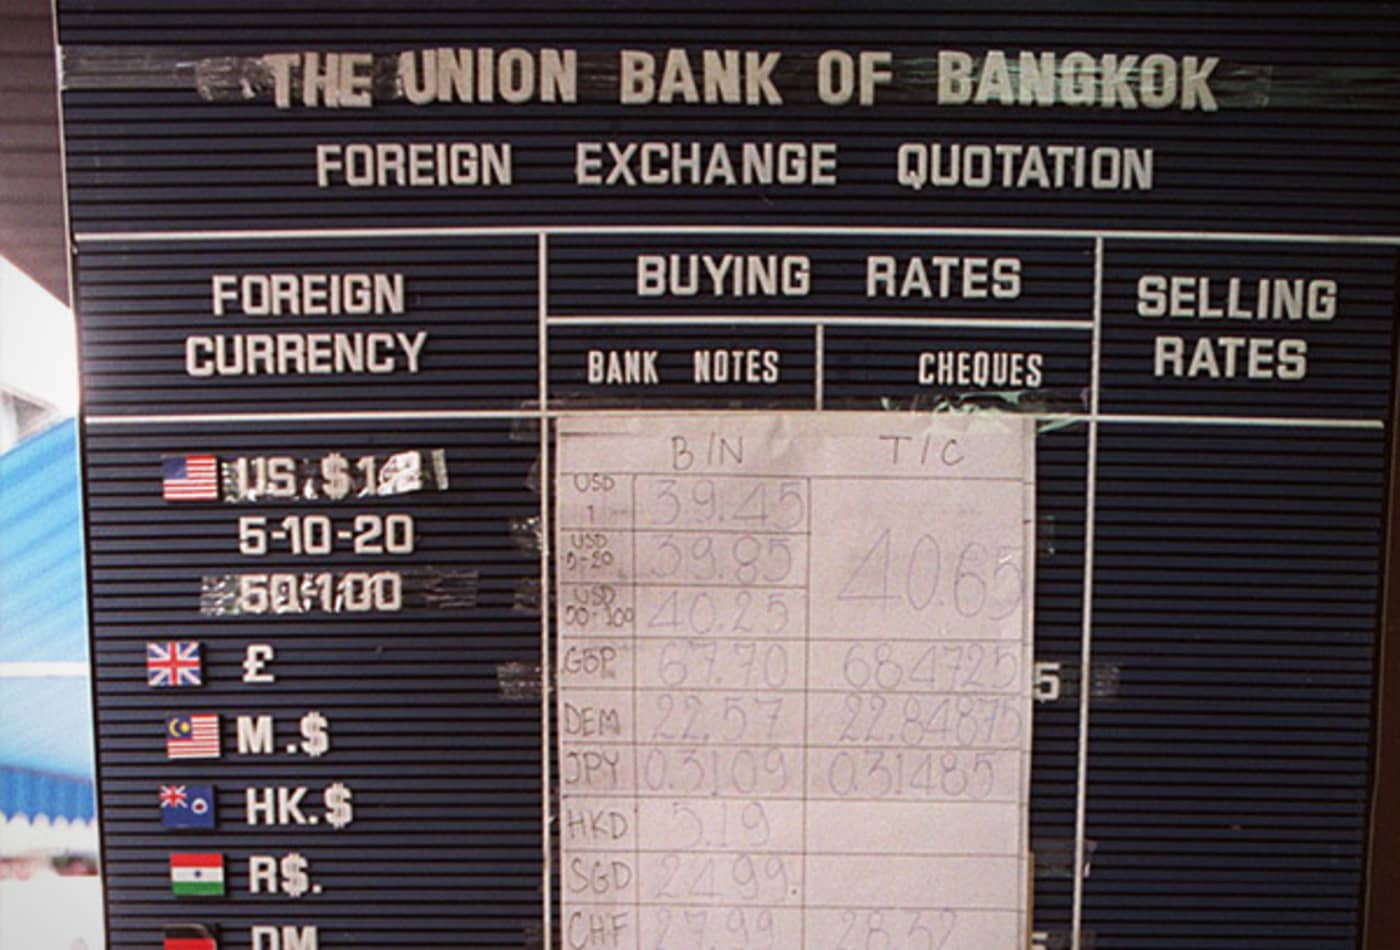 History-Making-Events-Currency-Markets-Thai-Baht-Collapse.jpg